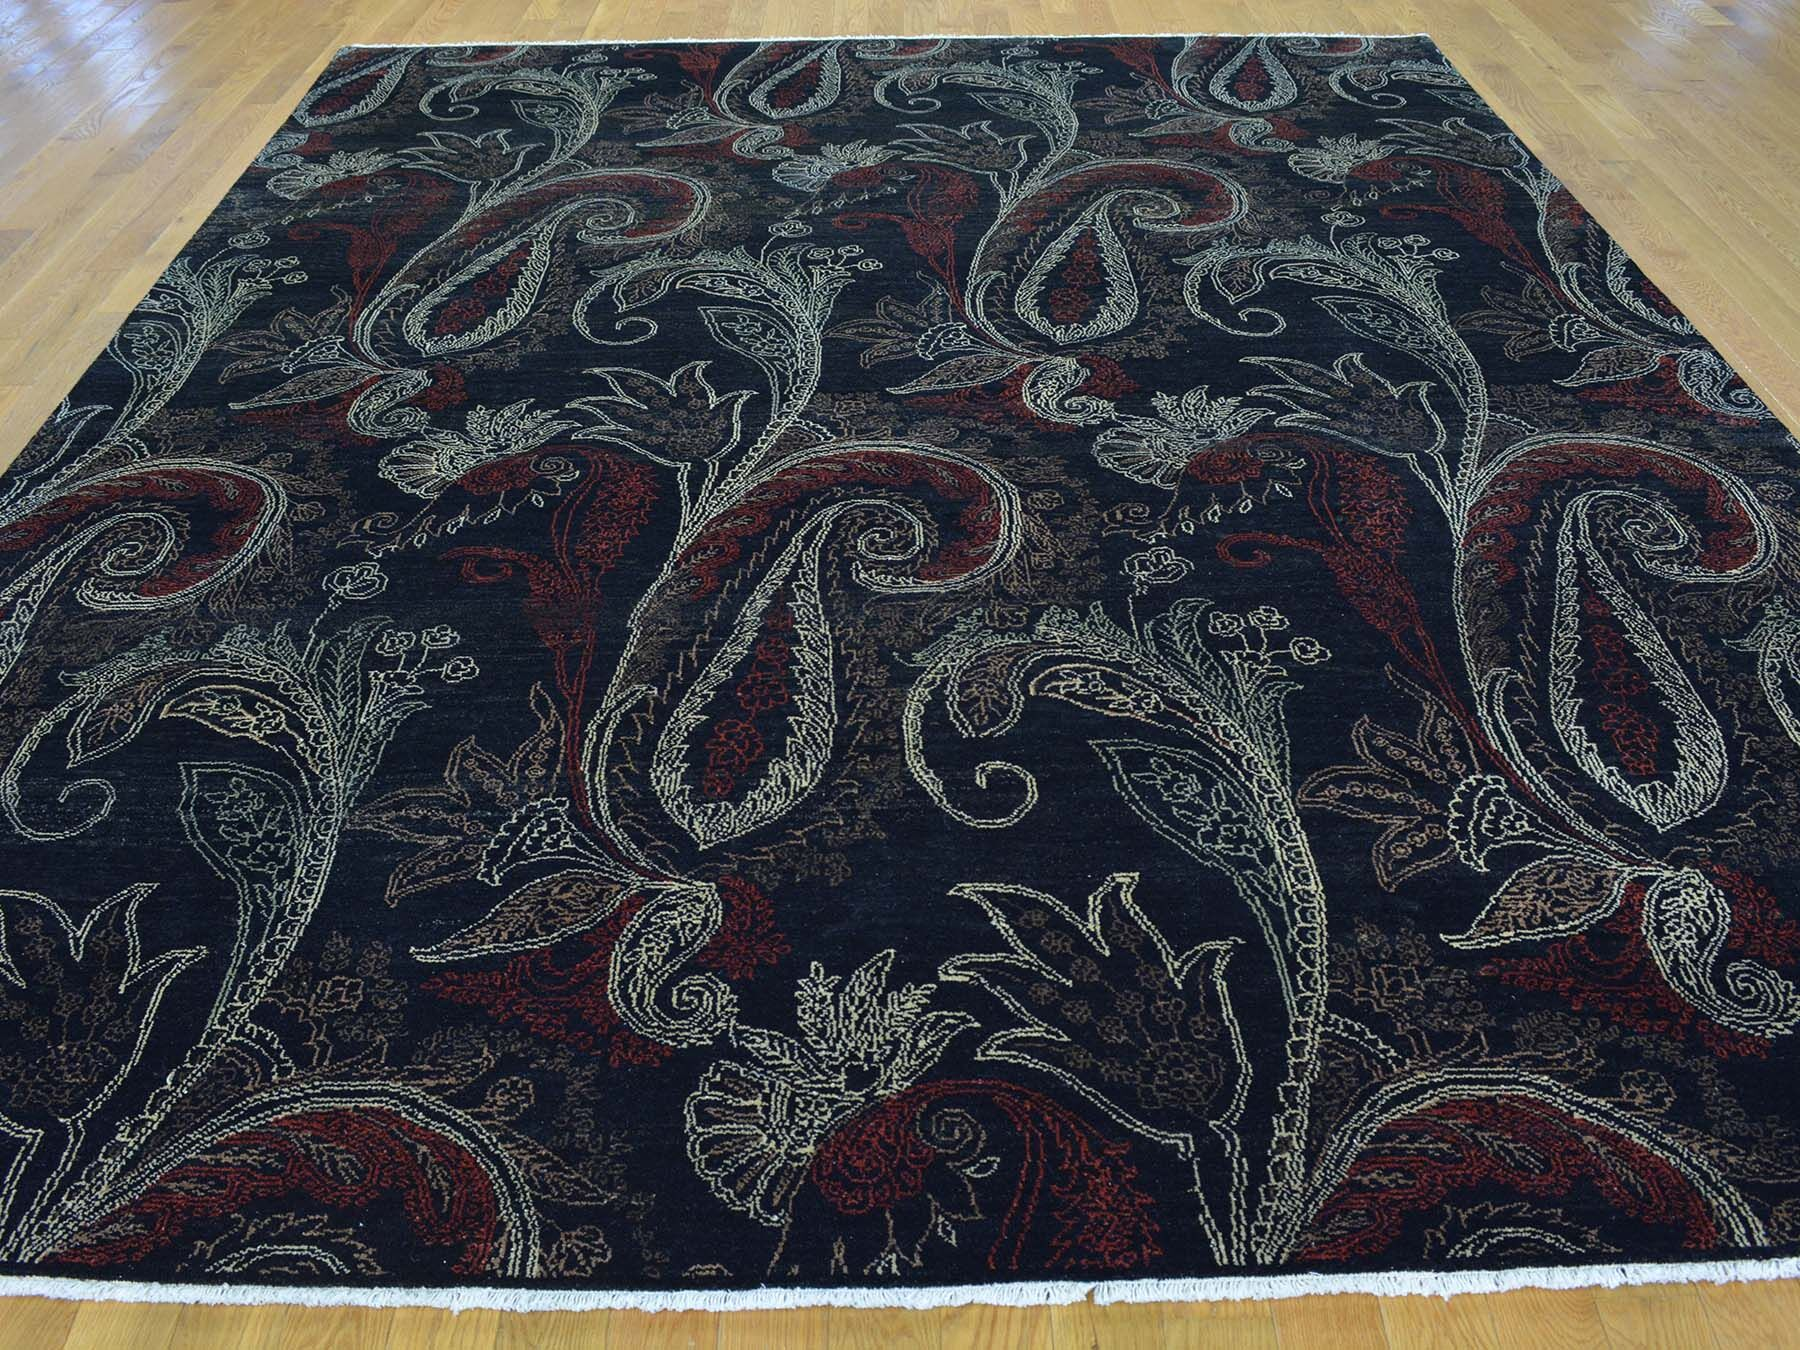 One-of-a-Kind Biggerstaff Tulip Paisley Design Hand-Knotted Black Wool Area Rug